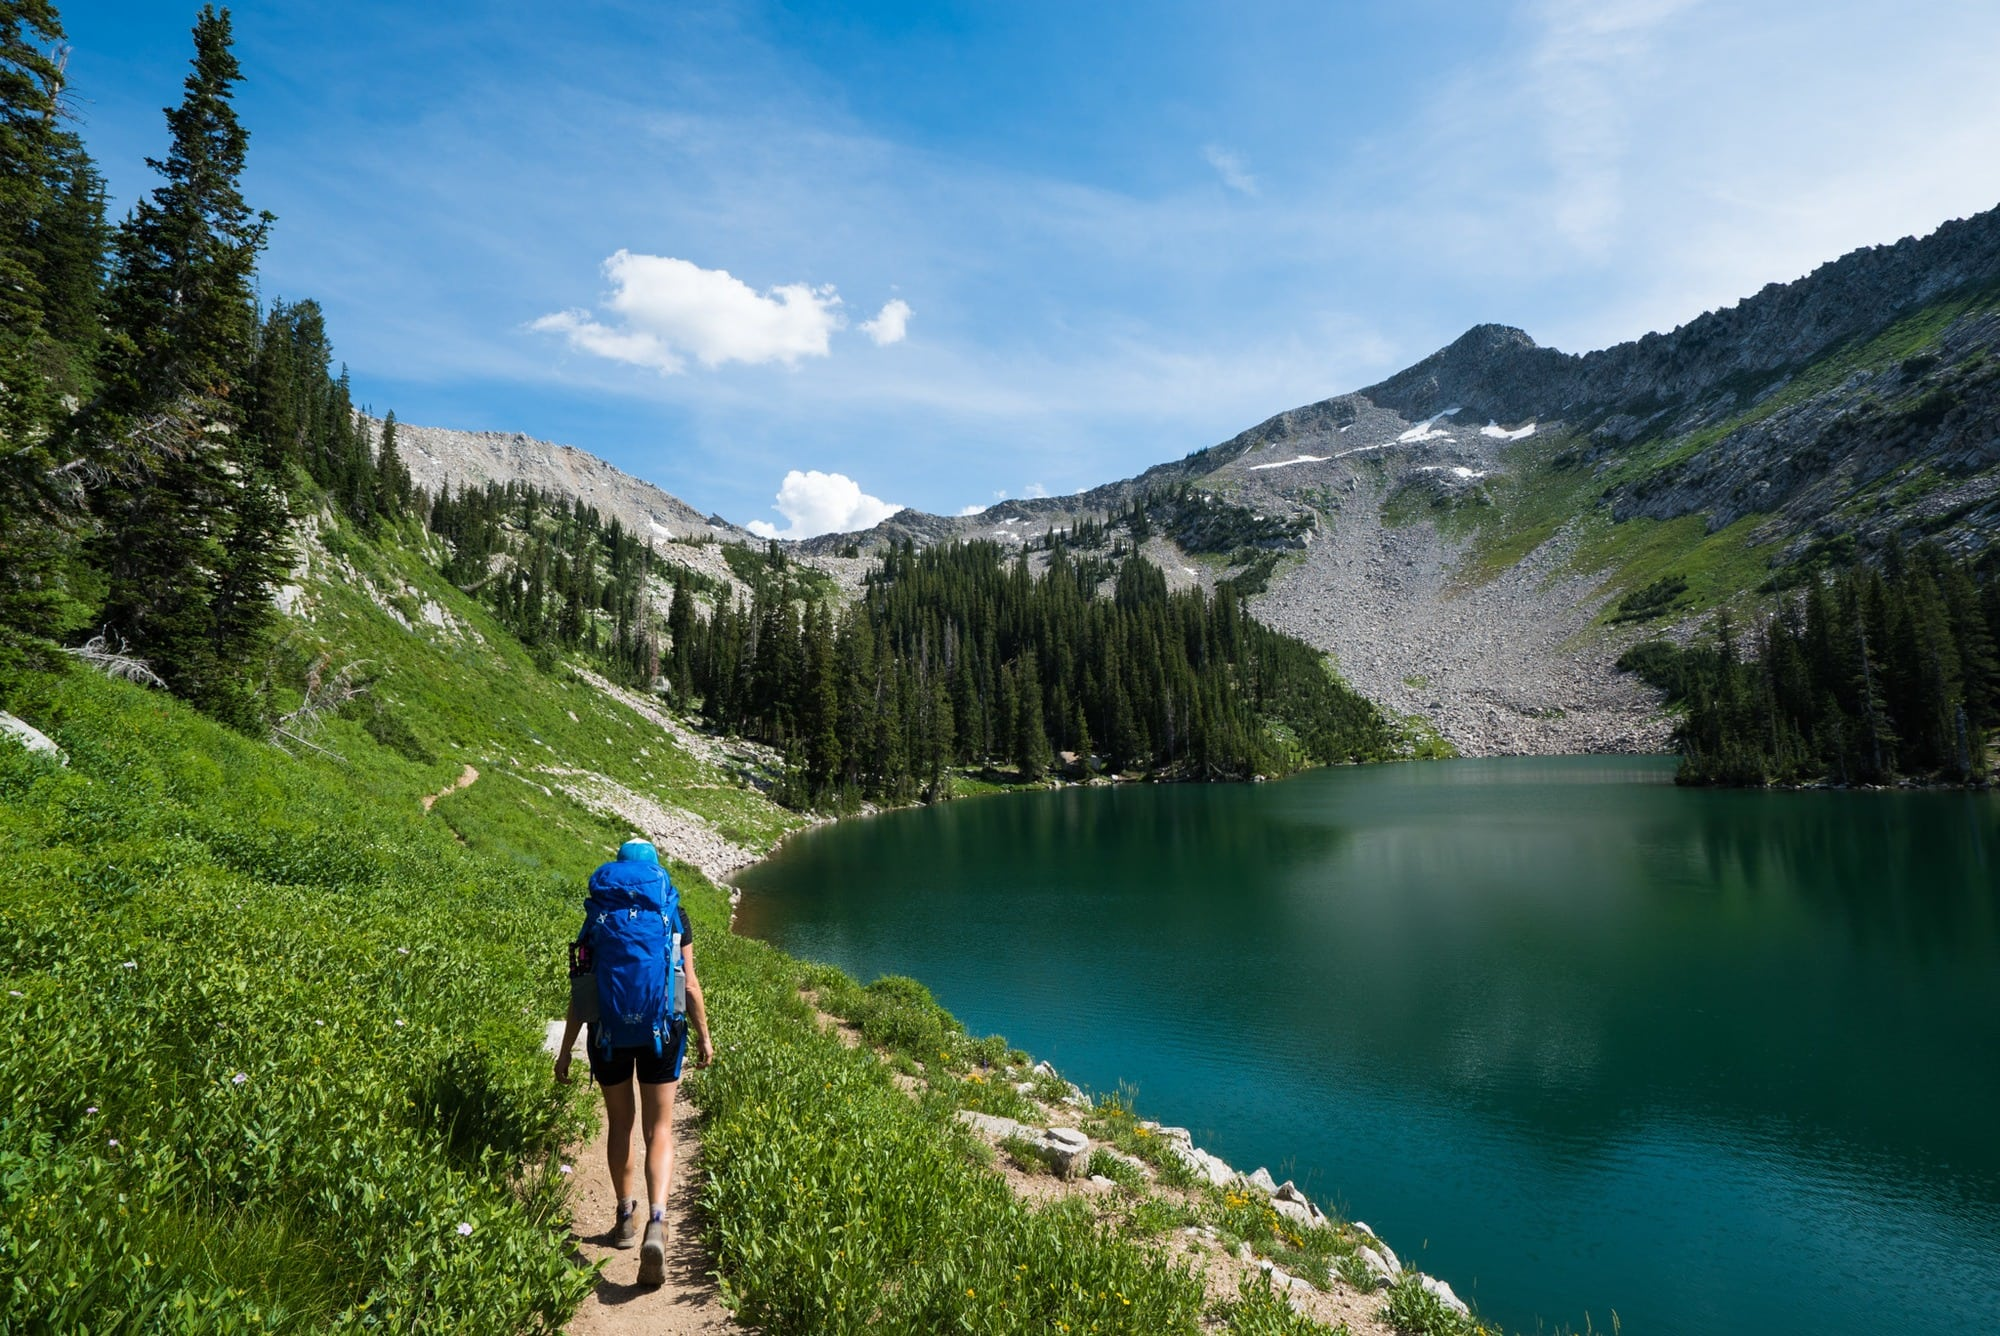 Red Pine Lake // Learn about 12 of the best Salt Lake City hikes from alpine lakes to peaks to waterfalls including trail stats and trailhead info.